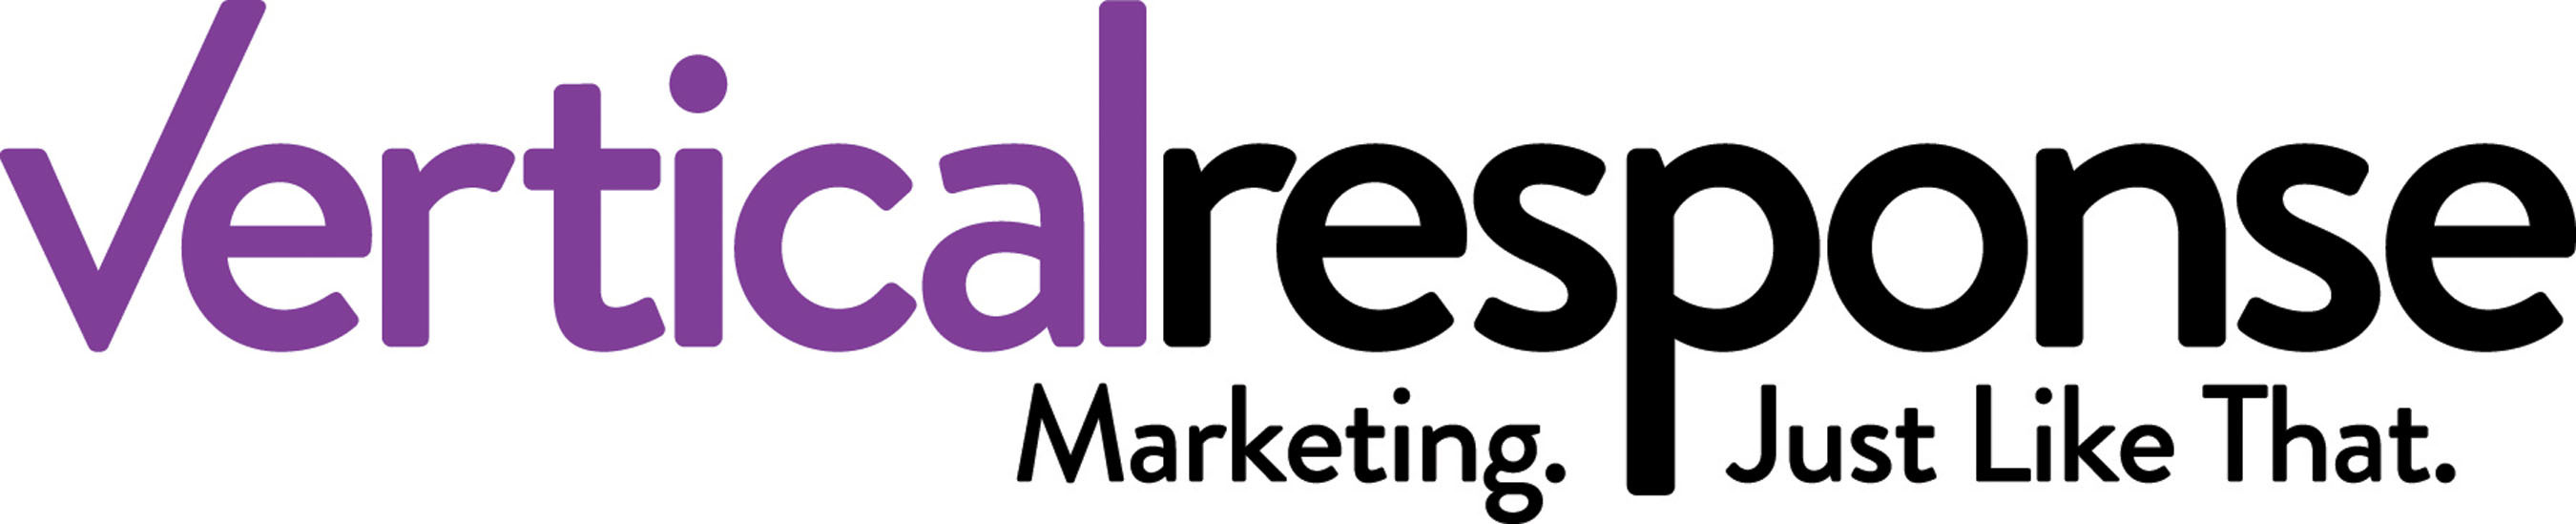 VerticalResponse. 37, likes · 7 talking about this. VerticalResponse provides a full suite of self-service marketing solutions for small businesses /5(10).